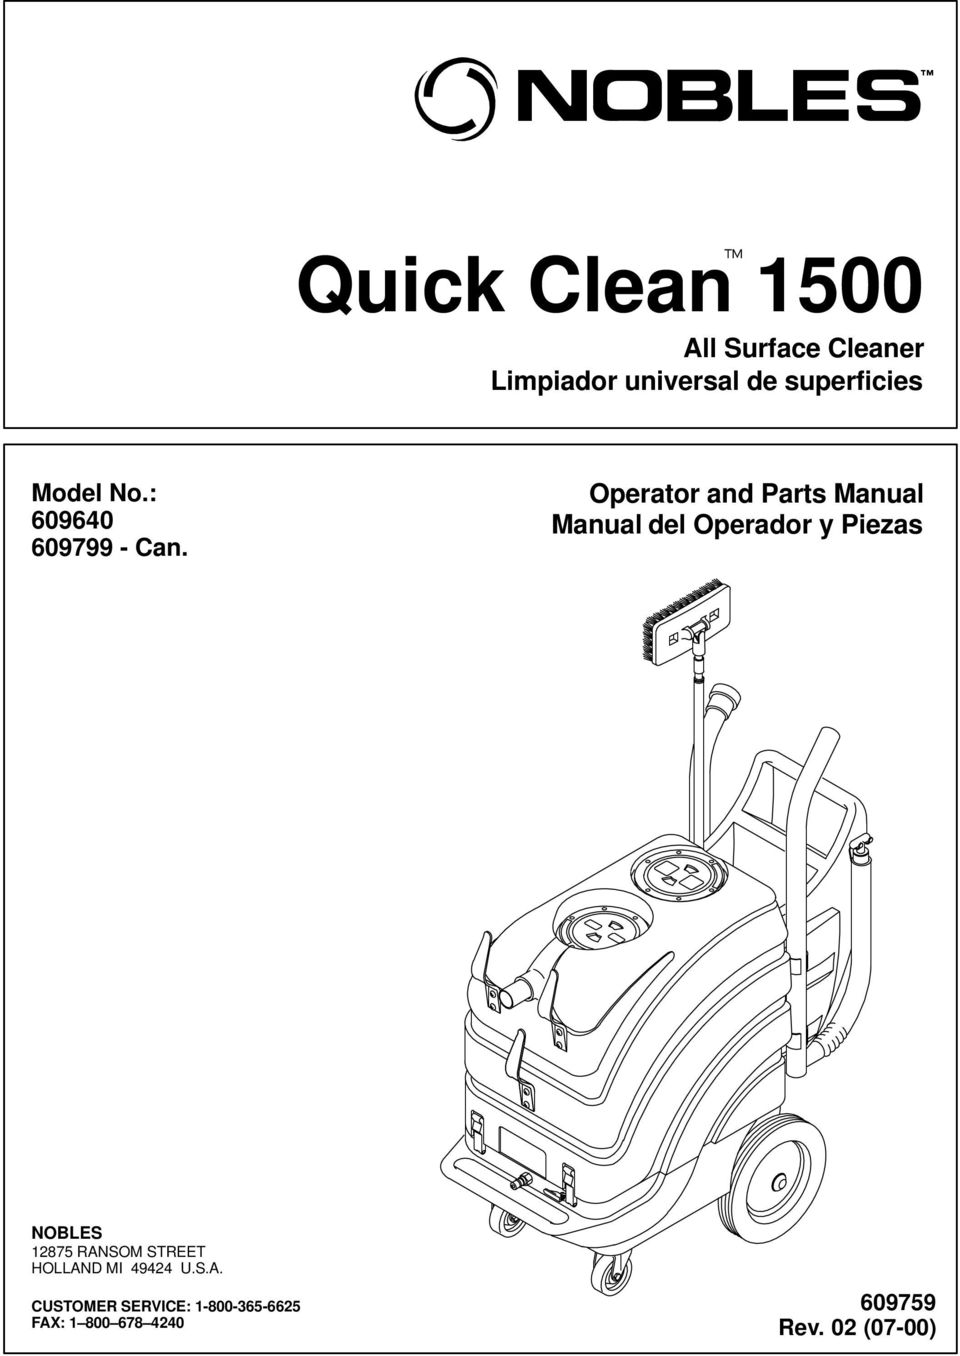 Operator and Parts Manual Manual del Operador y Piezas NOBLES 12875